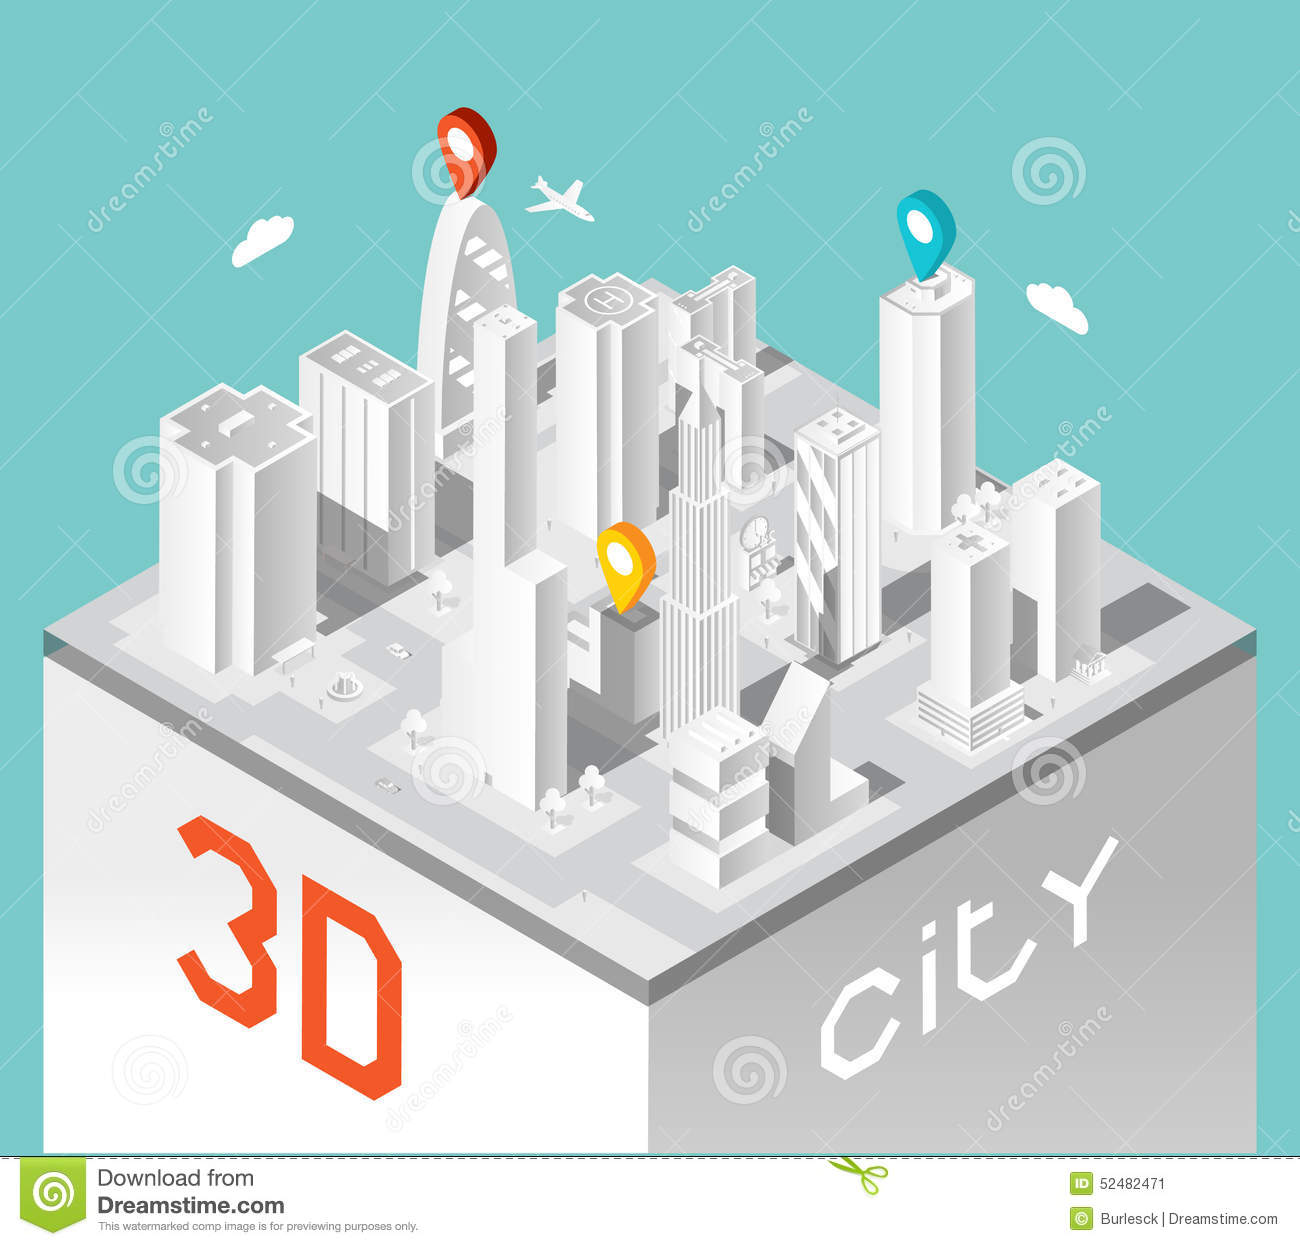 What is a paper city What is the meaning of this word What are the paper cities in Russia